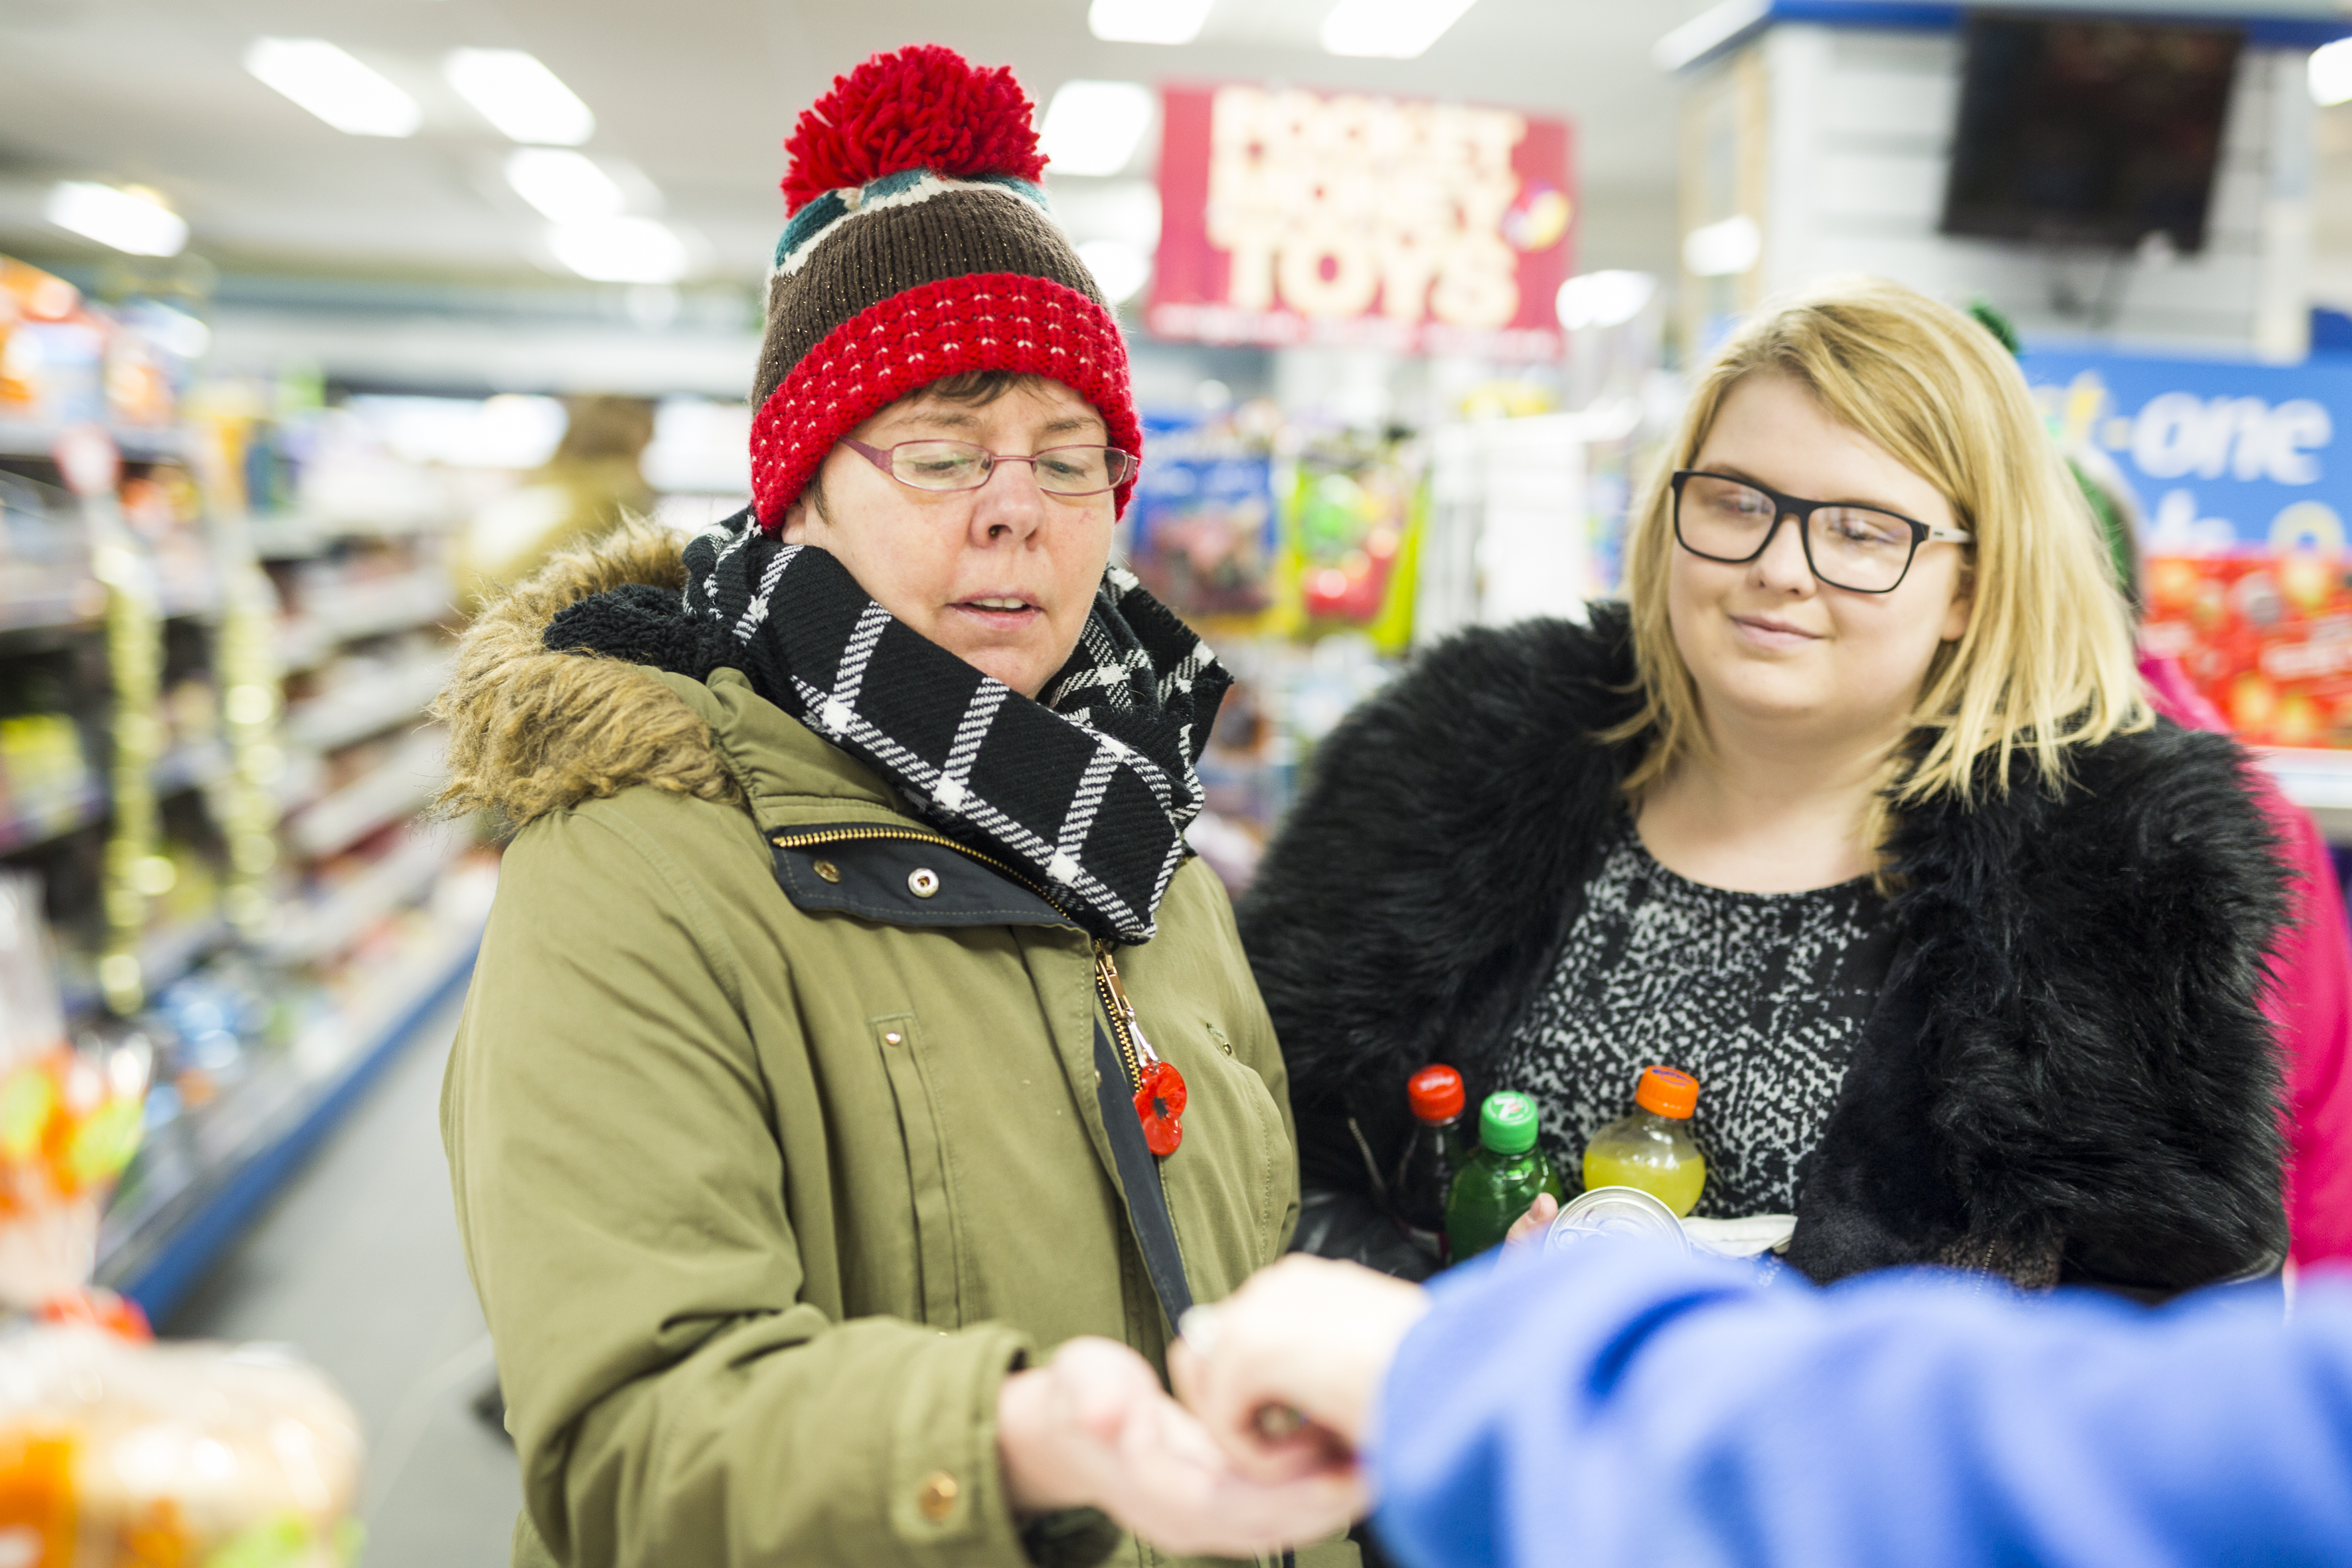 service user and support worker from Osman House shopping in the community